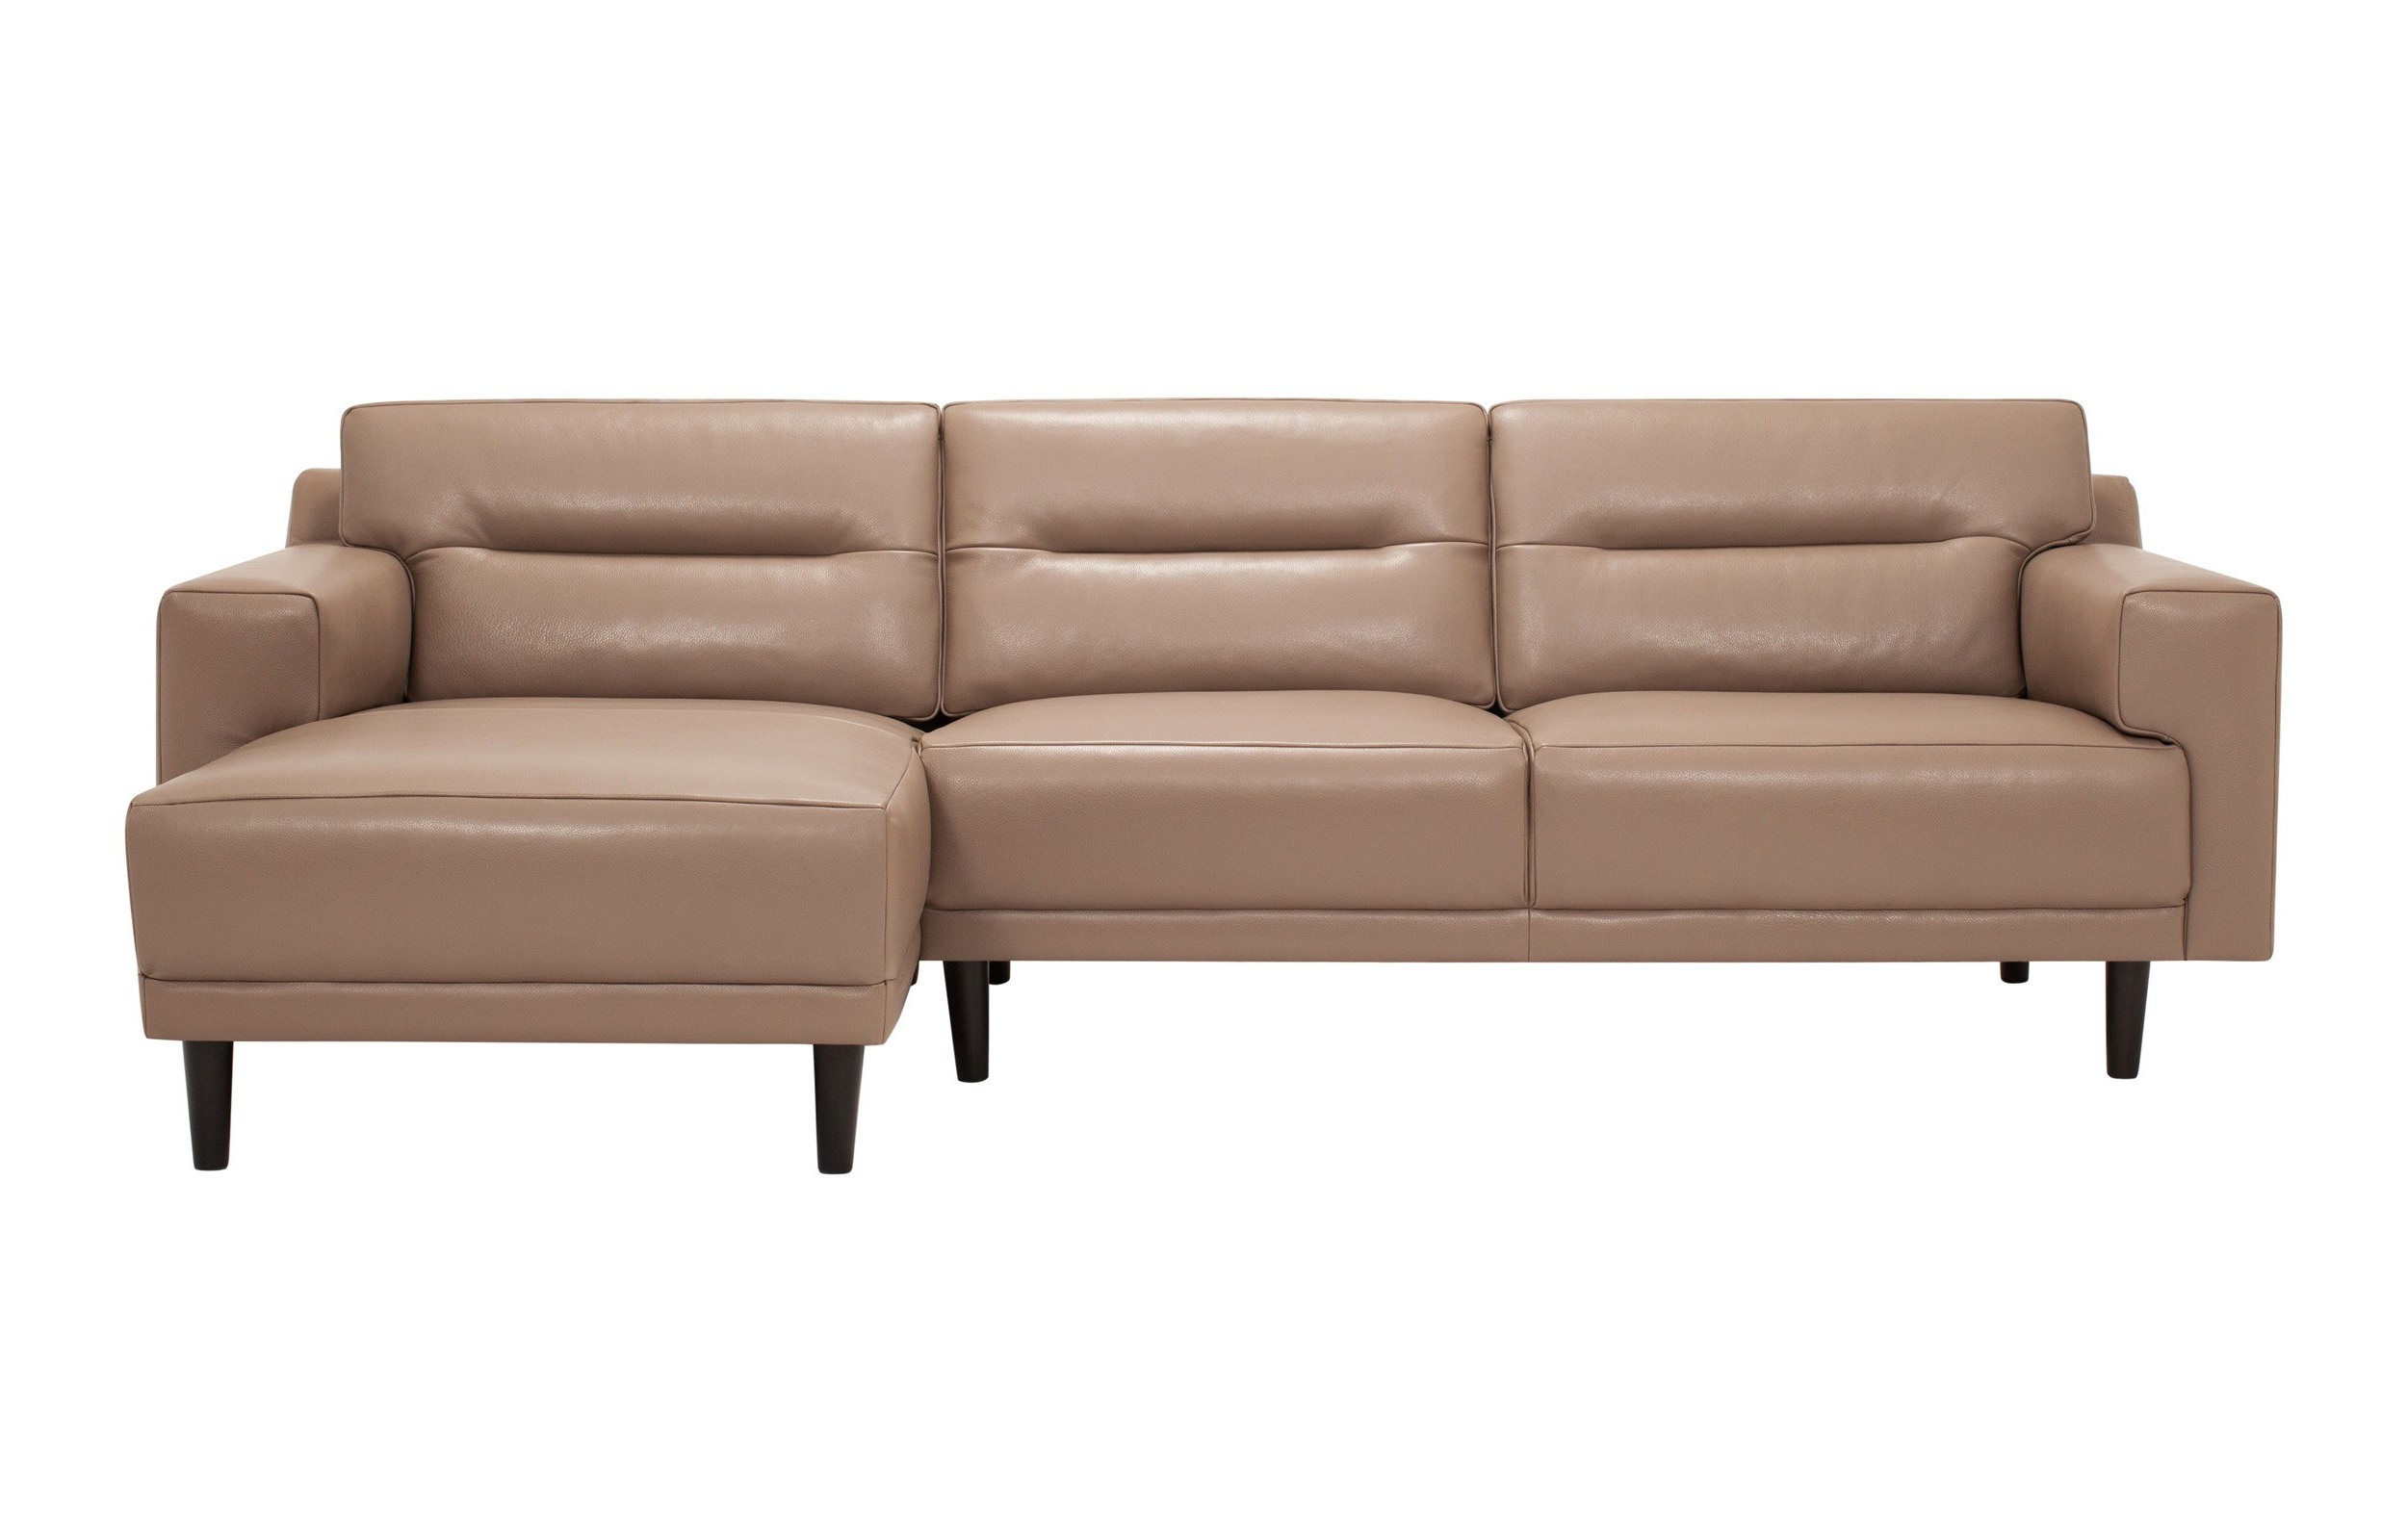 Famous Affordable Chaise Sectionalblu Dot Sunday J Sectional Sofa Intended For Mcculla Sofa Sectionals With Reversible Chaise (Gallery 15 of 20)